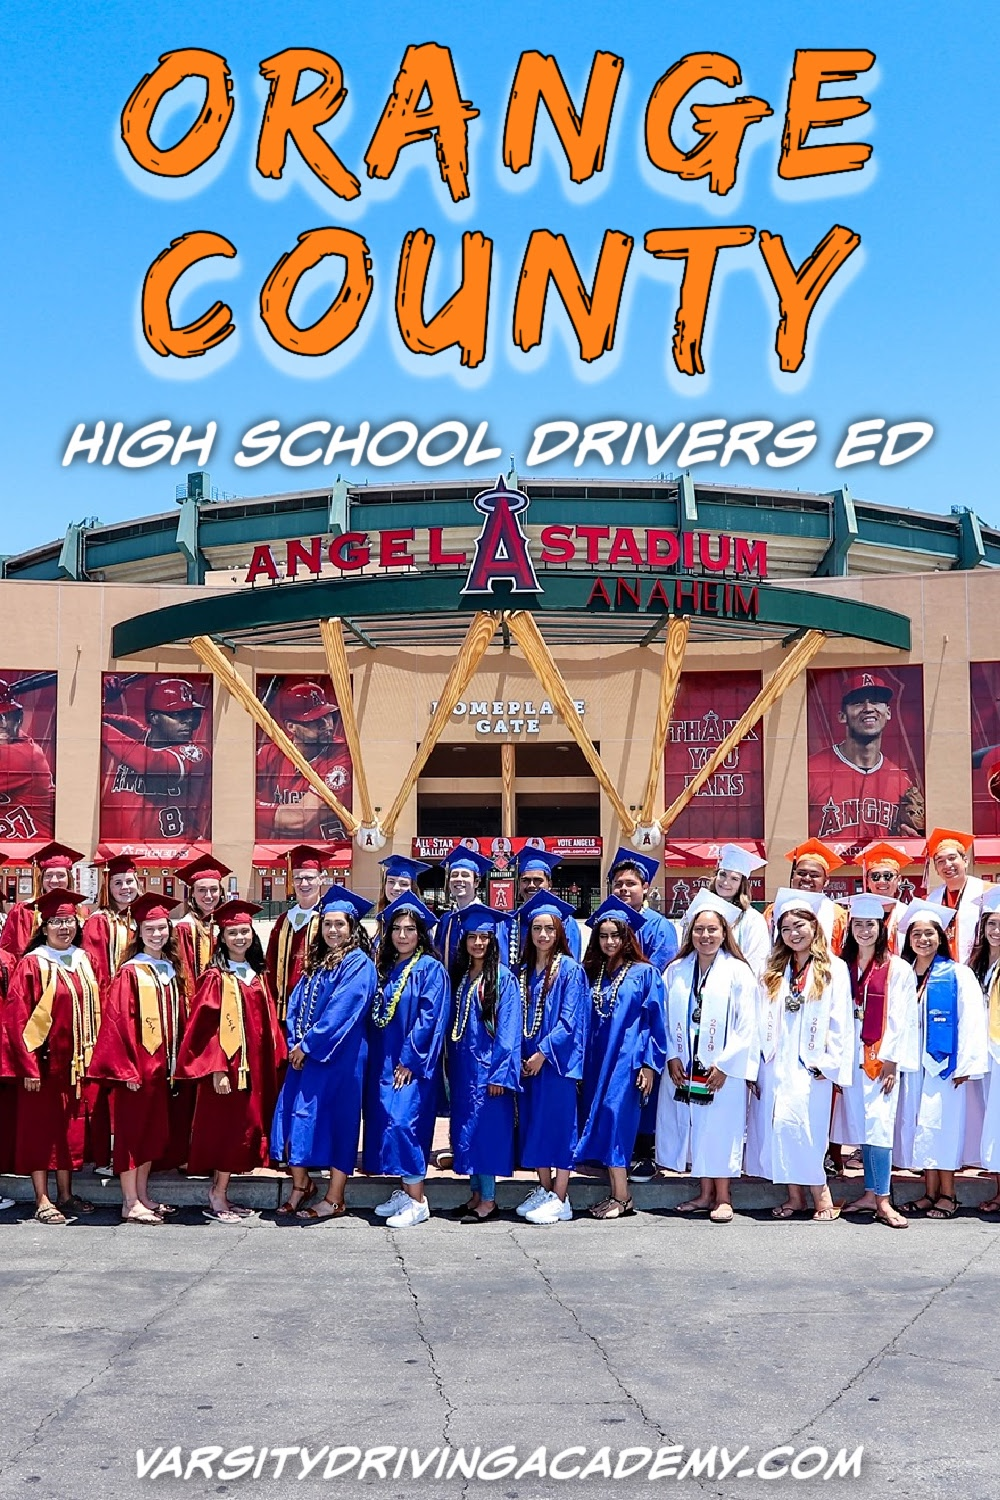 The best Orange County high school drivers ed is Varsity Driving Academy where Orange County teens can learn to drive defensively and responsibly.